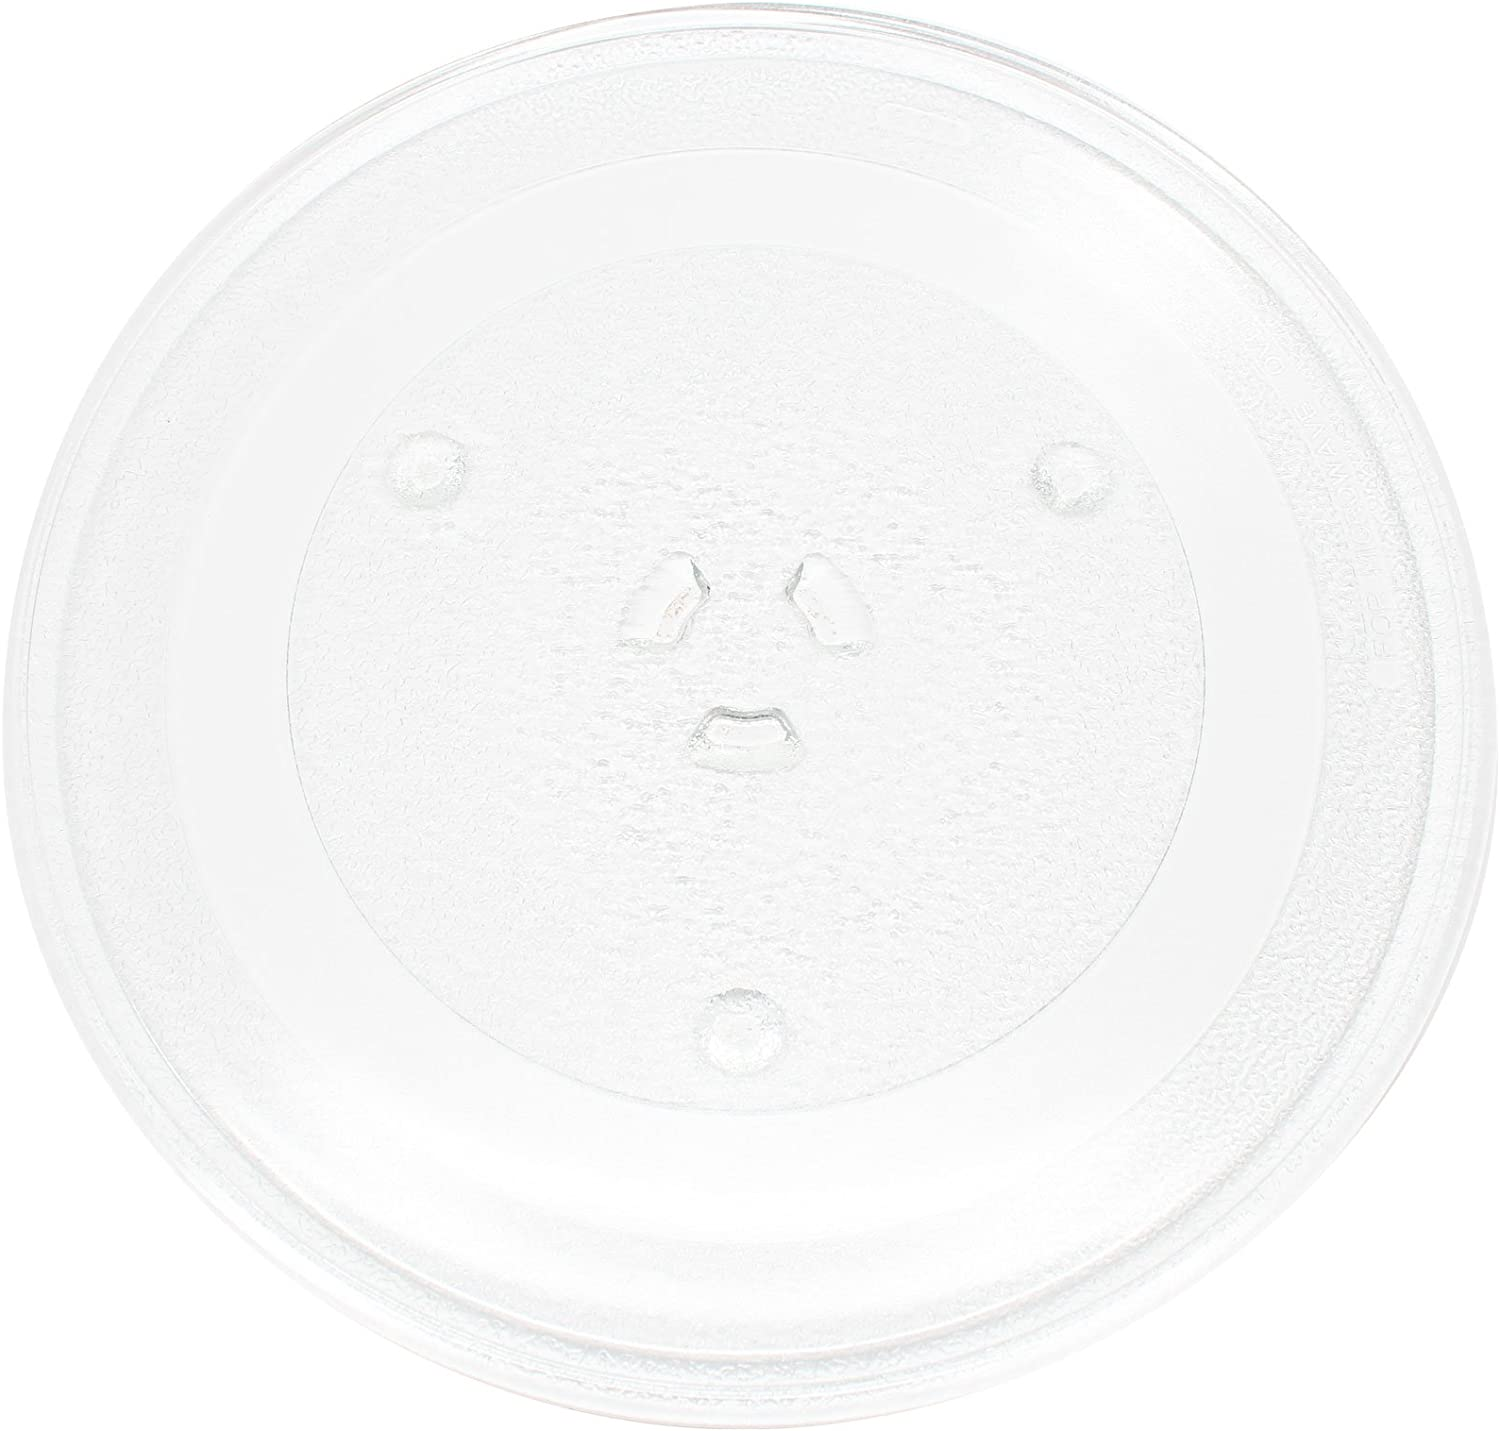 "Replacement for Samsung MW4592W Microwave Glass Plate - Compatible with Samsung DE74-20102 Microwave Glass Turntable Tray - 11 1/4"" (285mm)"